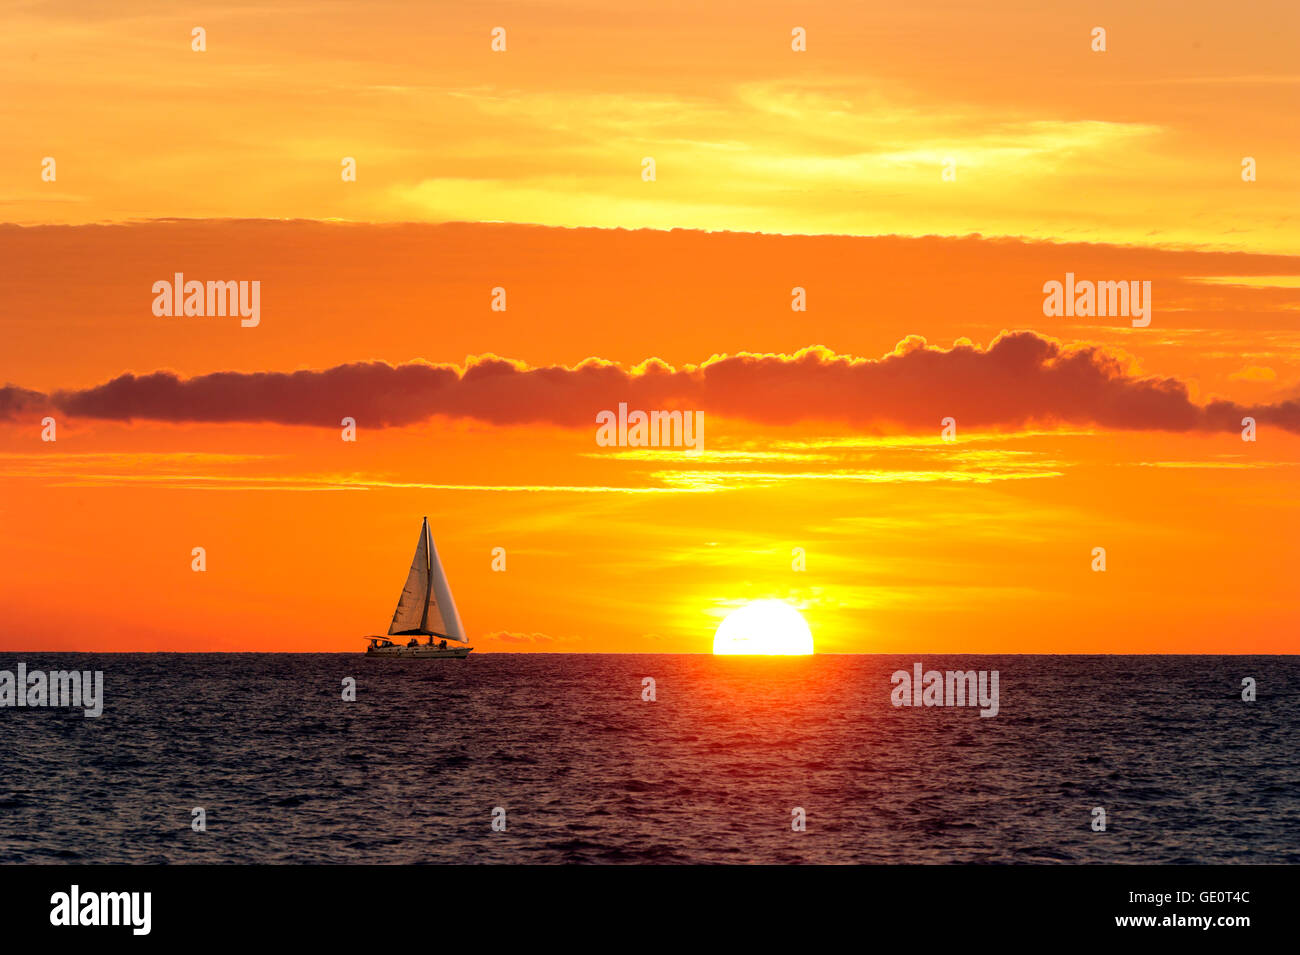 Sailing sunset is a sailboat moving along the water as the sun is going down on the ocean horizon. - Stock Image